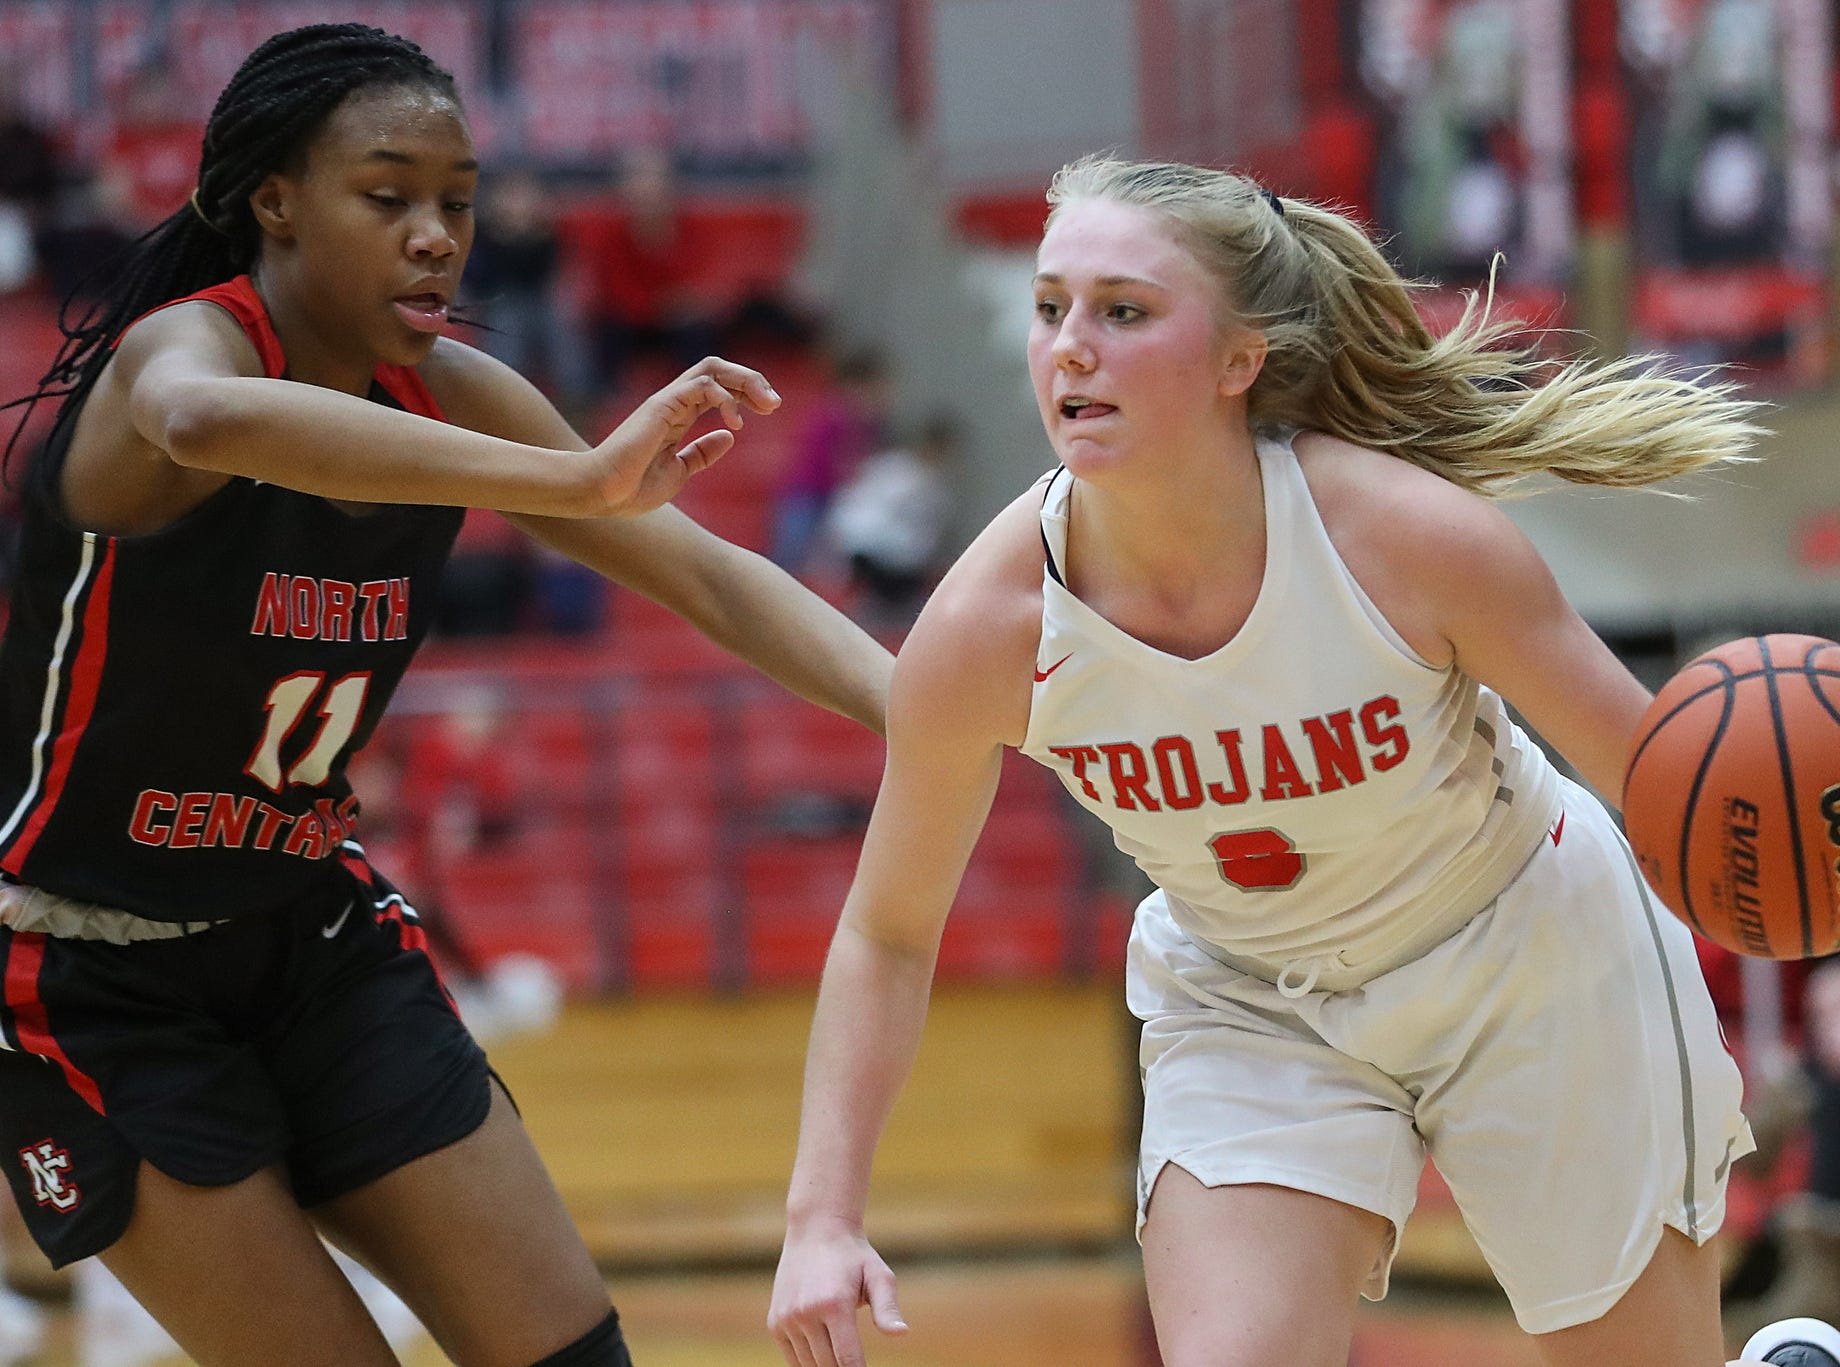 Center Grove Trojans guard Ashley Eck (3) drives around North Central Panthers guard Toree Jackson (11) in the first half of the game at Center Grove High School in Greenwood, Ind., Thursday, Jan. 10, 2019. Center Grove defeated North Central, 51-44.